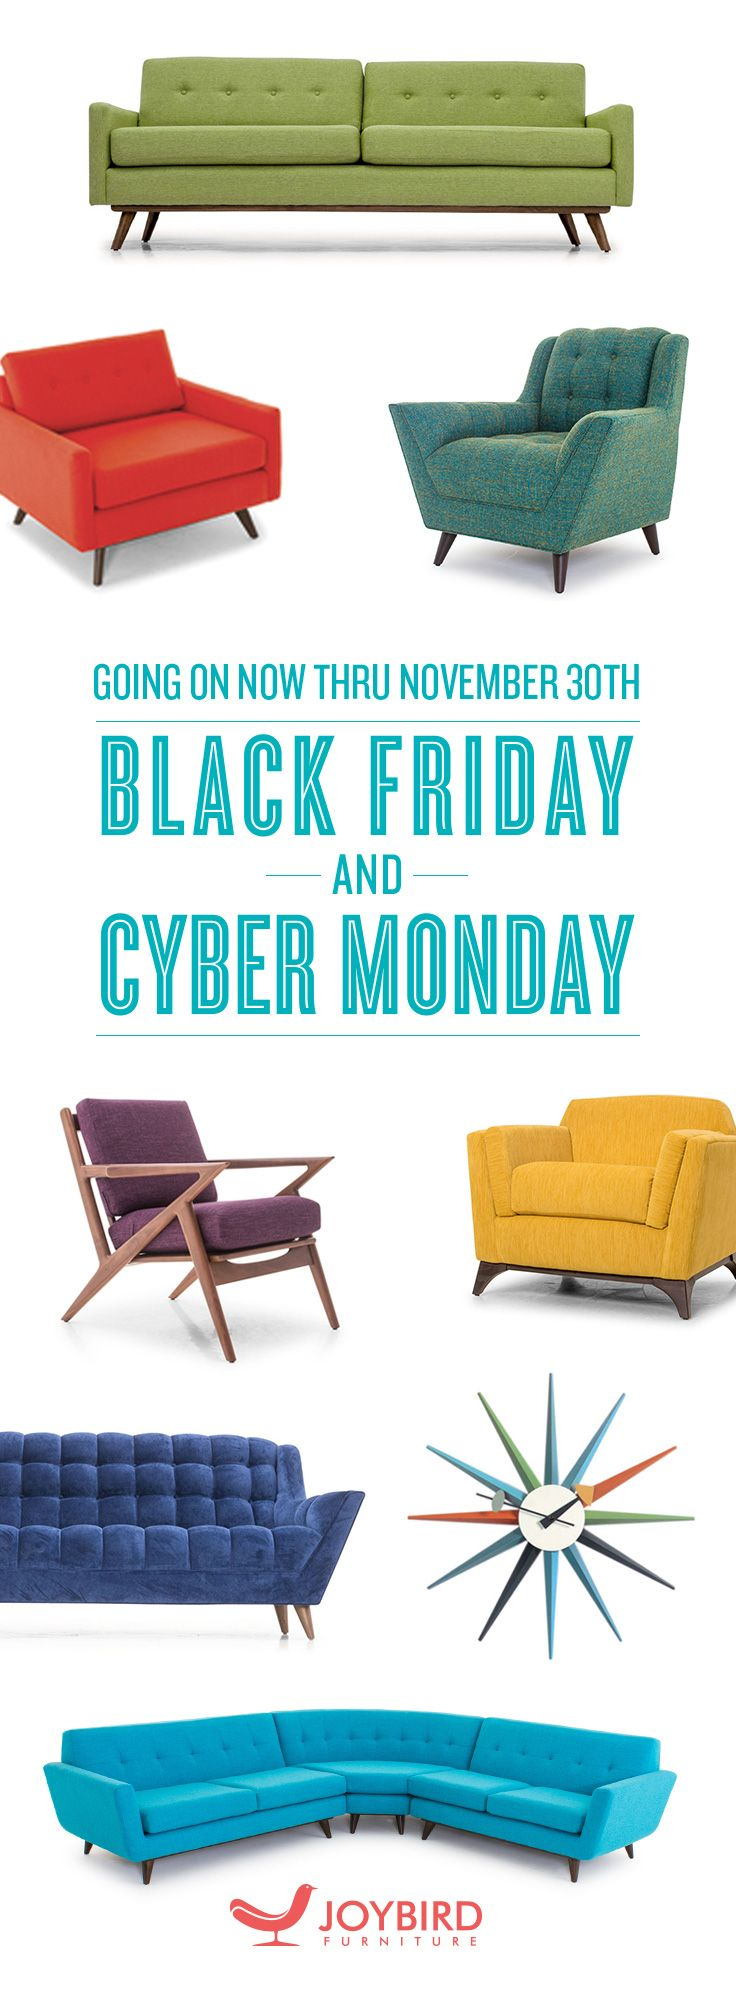 BLACK FRIDAY Sale Going On Now At Joybird.com! 20% Off Sitewide + Part 48